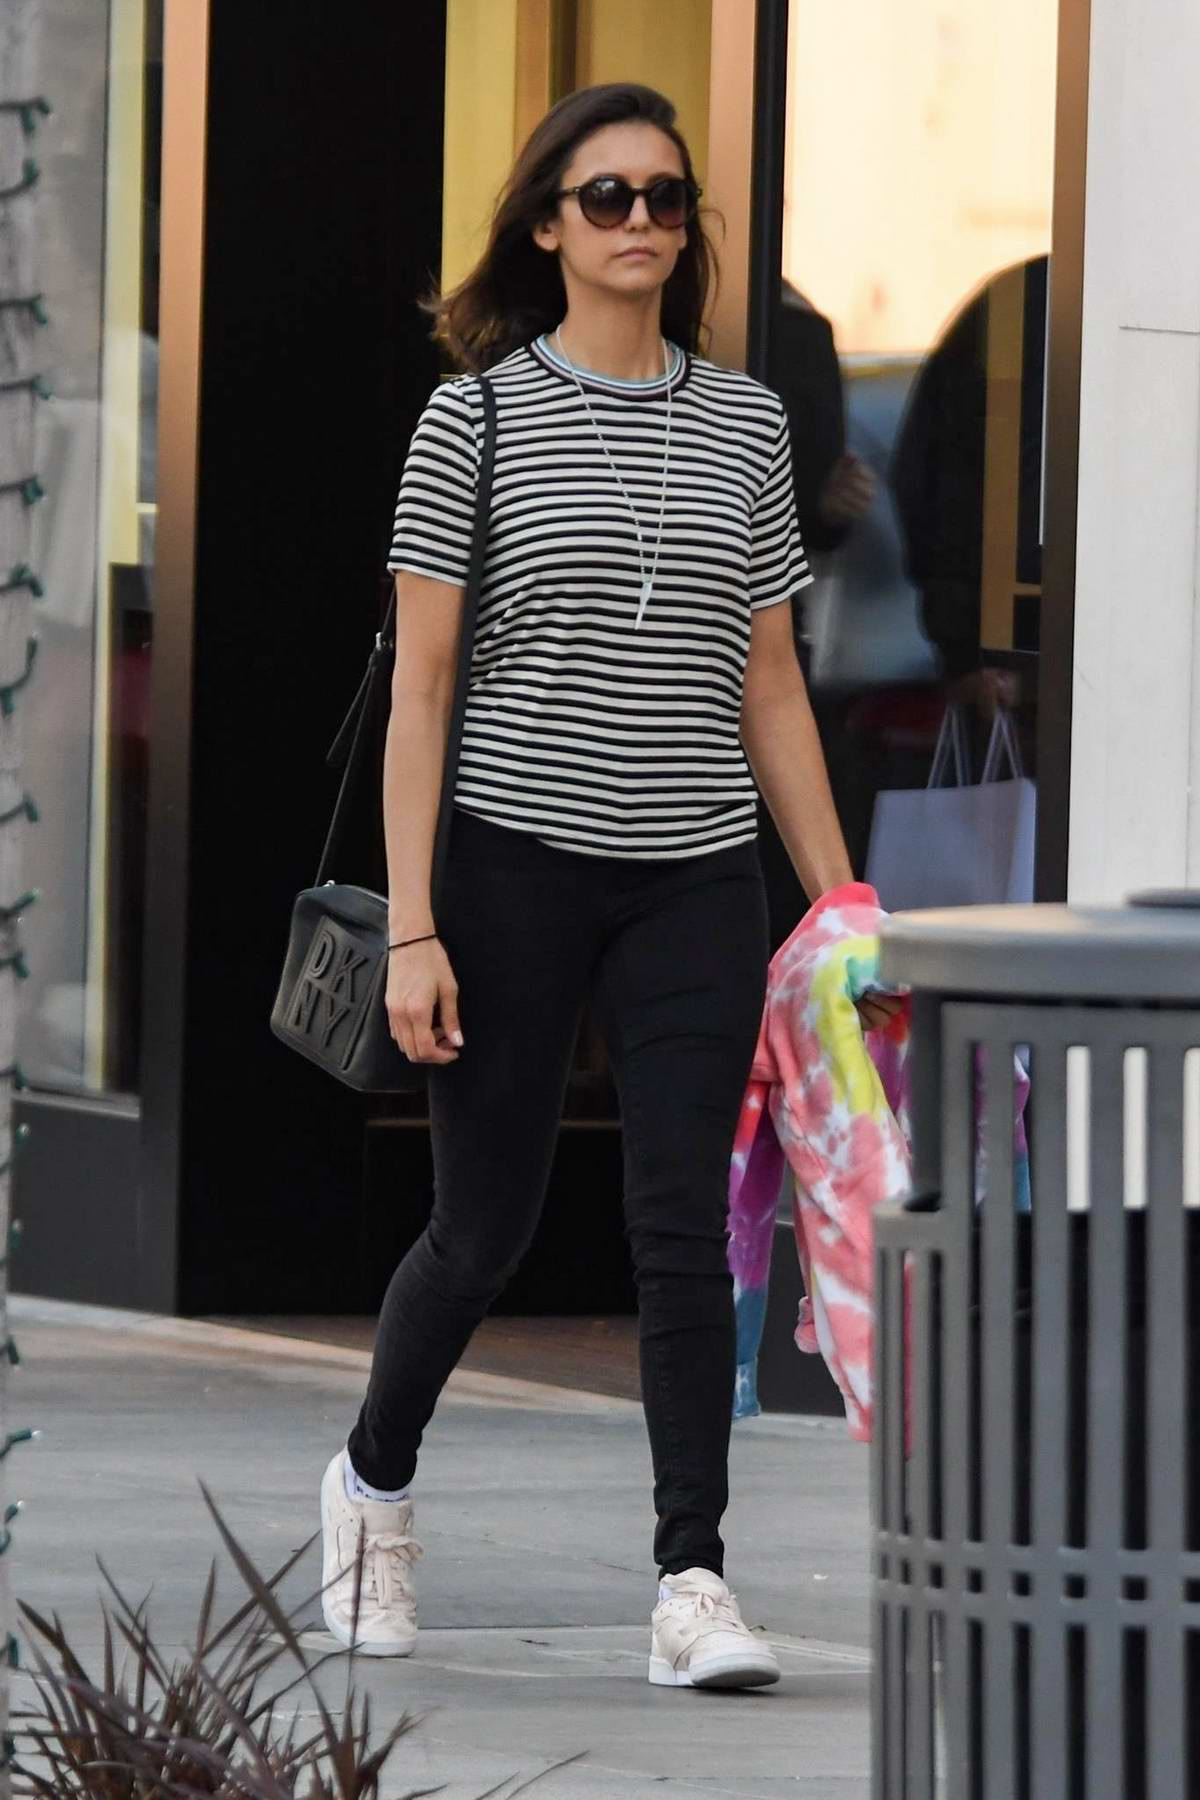 Nina Dobrev steps out in a striped top and black jeans while out for some shopping in Los Angeles